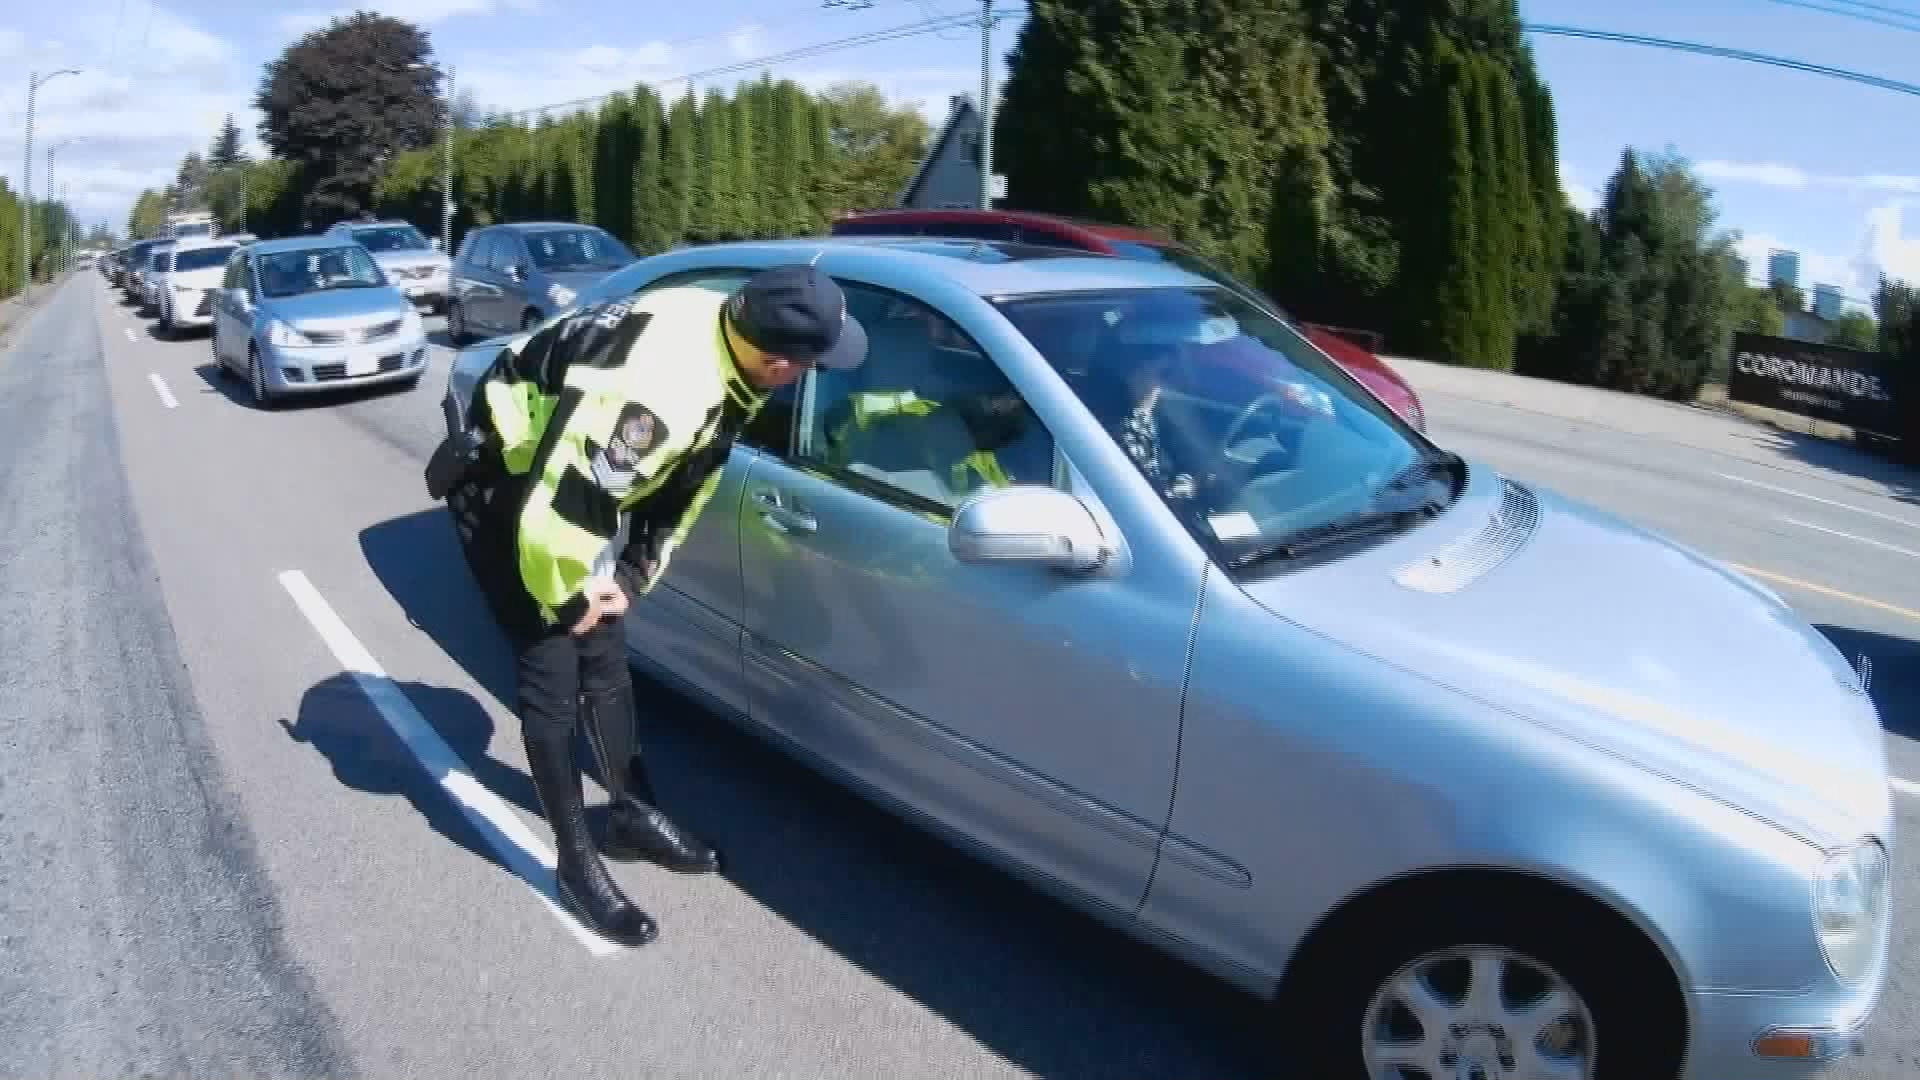 Figures show many British Columbians still aren't getting the message about distracted driving